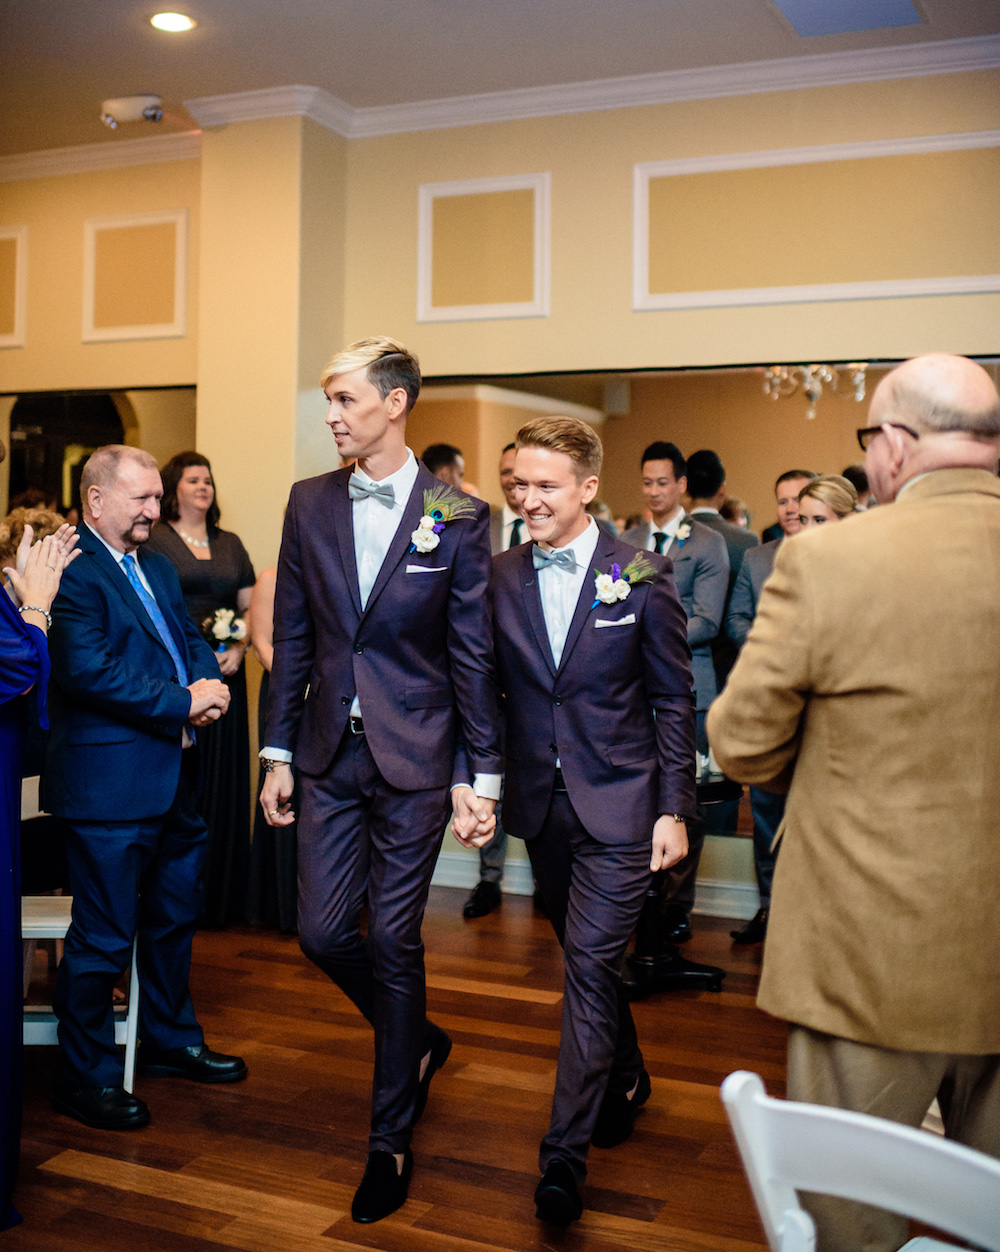 Naples Same Sex Weddings by Matt Steeves Photography Florida 10.jpg